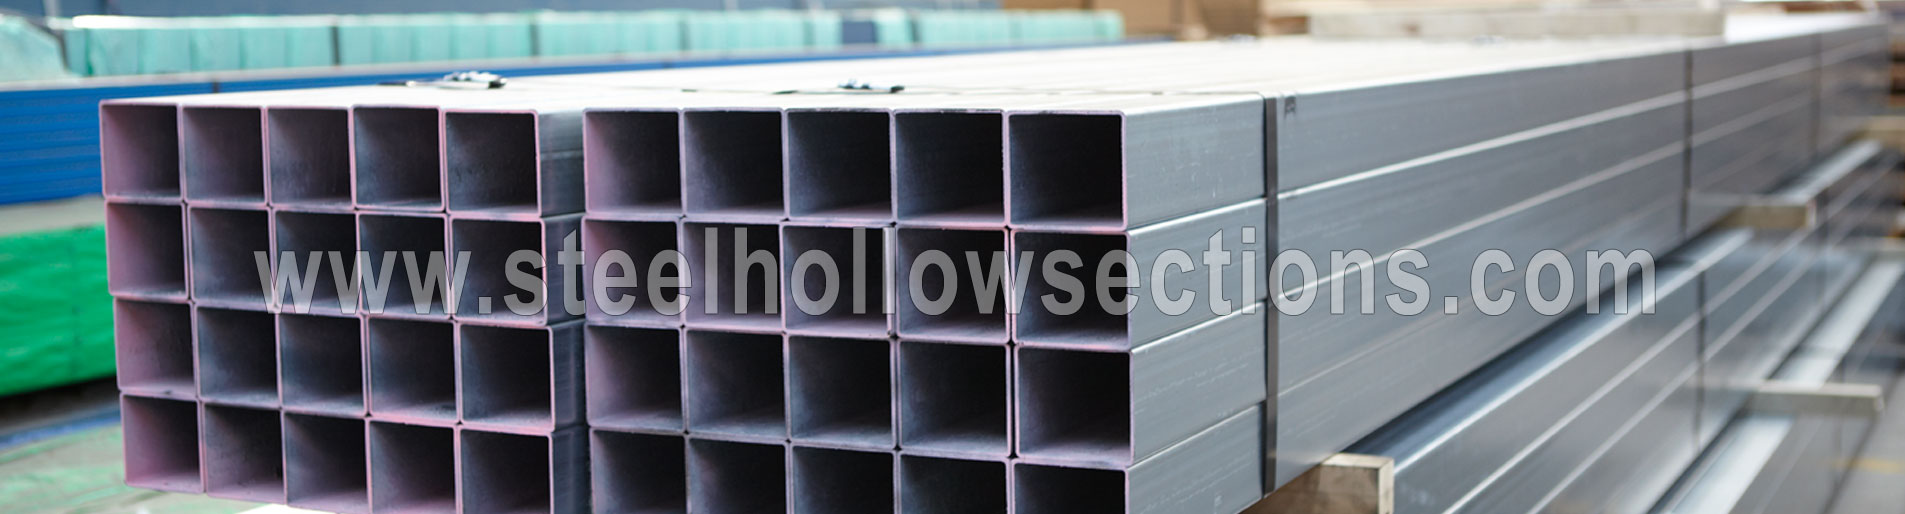 Hollow Section Rectangular Pipe Suppliers Dealers Distributors